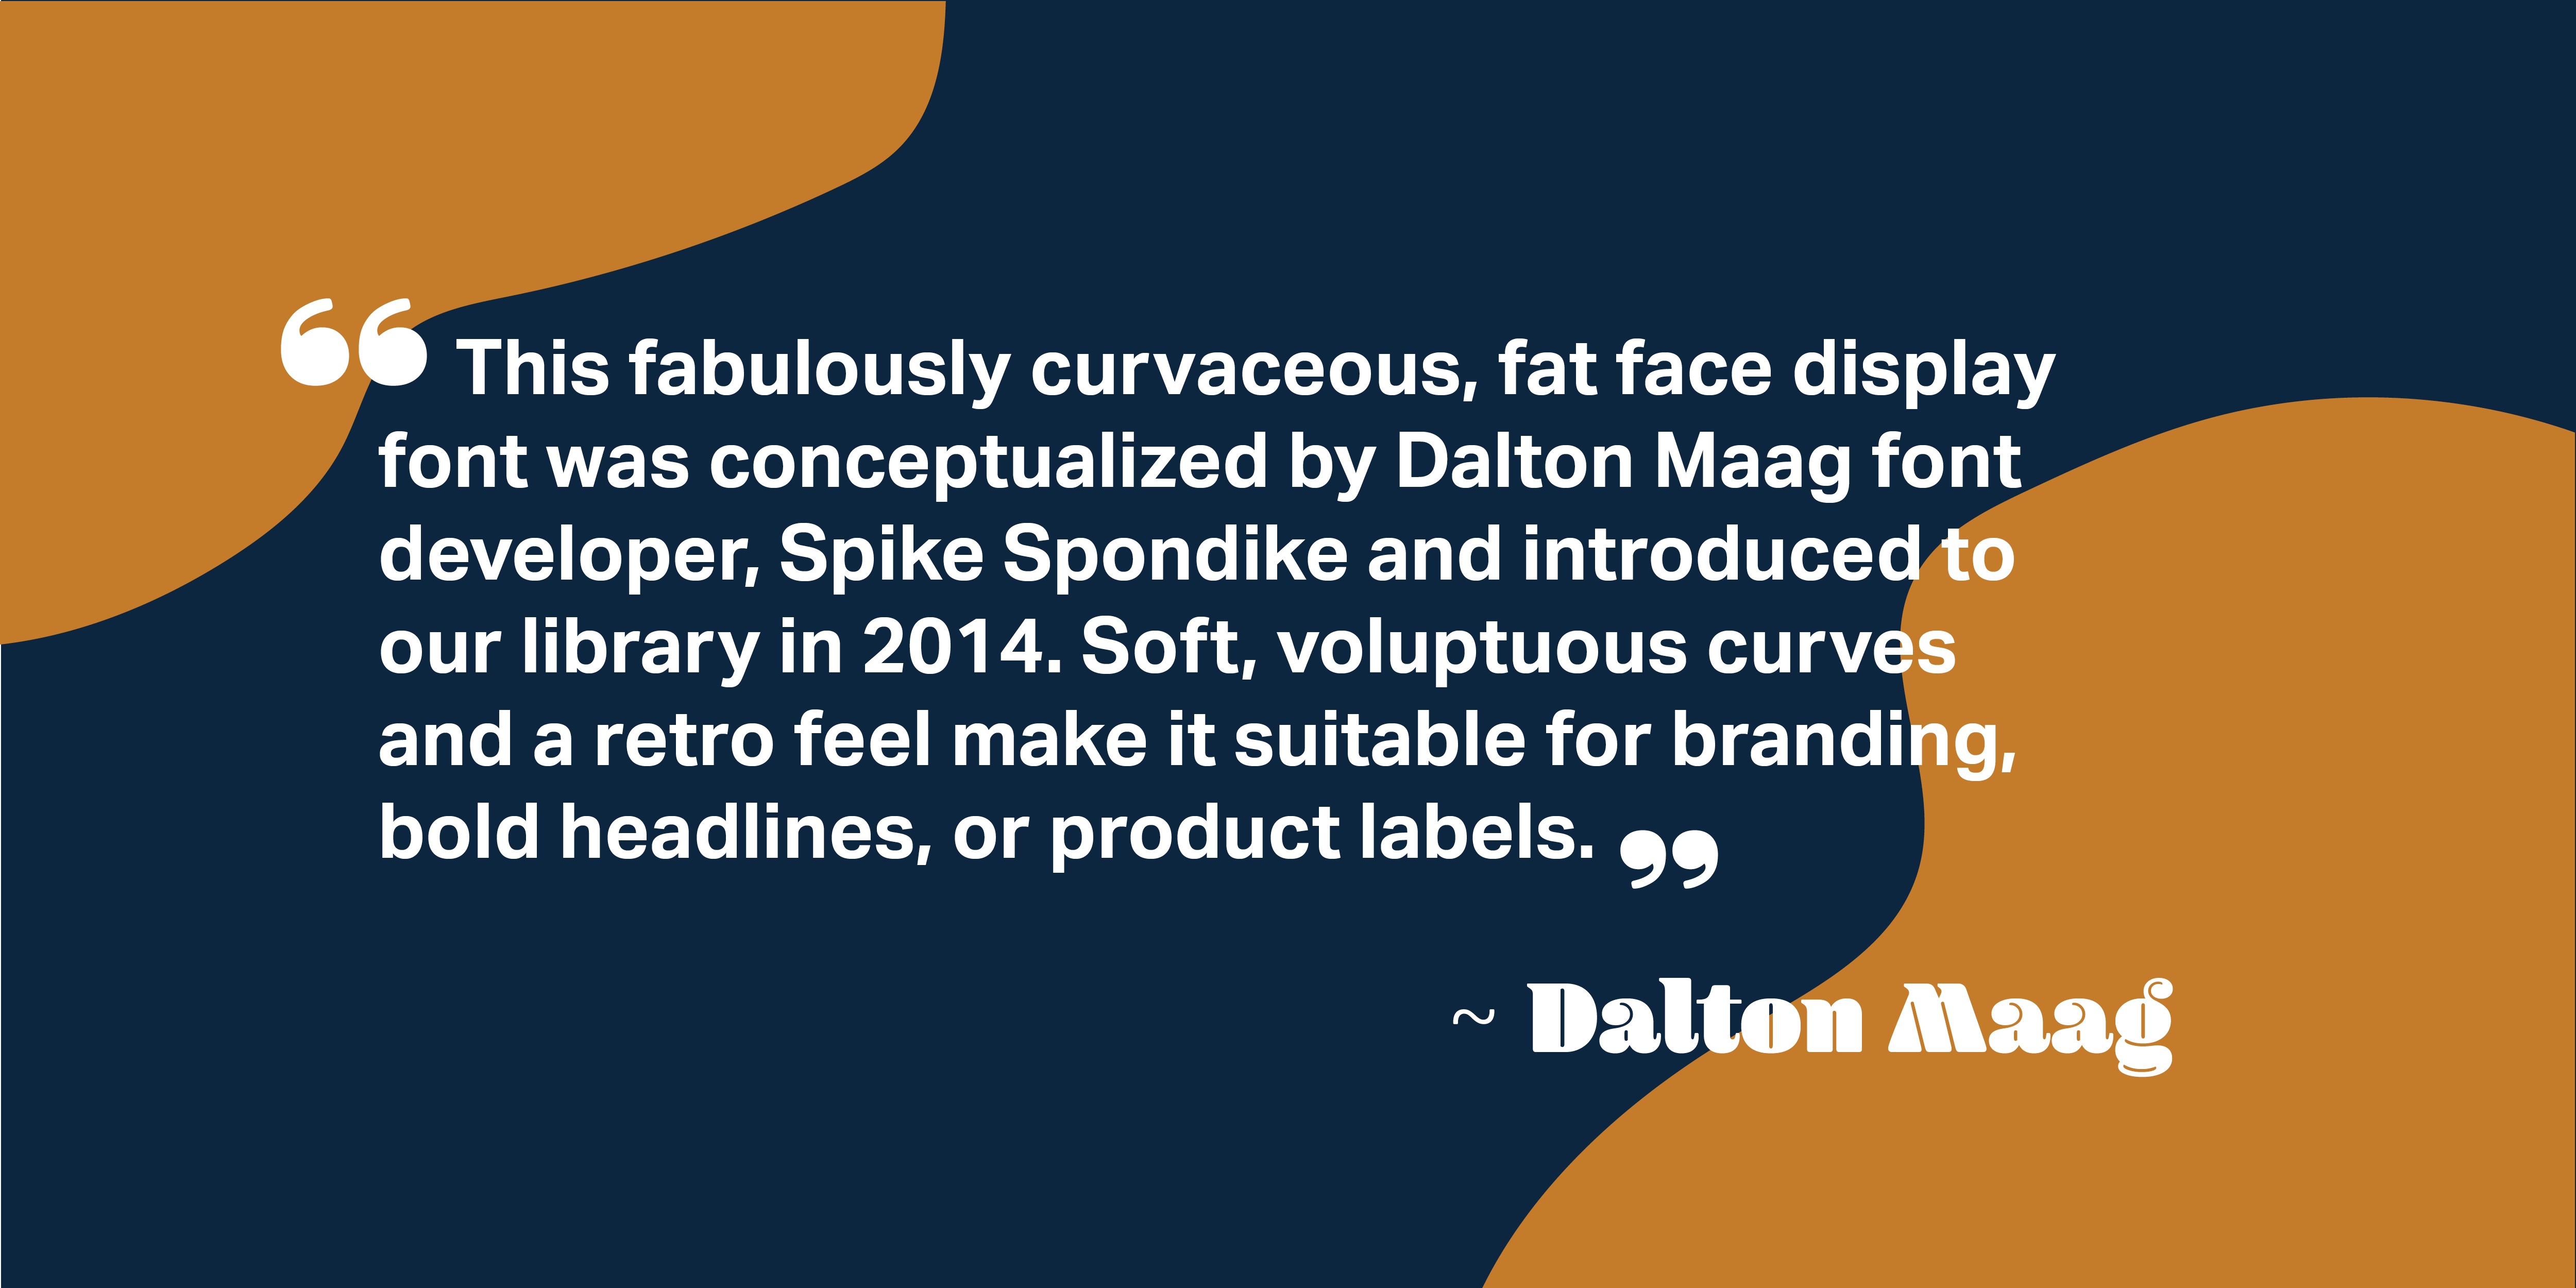 A quote on a dark blue and orange background from Dalton Maag, design studio, on Blenny: This fabulously curvaceous, fat face display font was conceptualized by Dalton Maag font developer, Spike Spondike and introduced to our library in 2014. Soft, voluptuous curves and a retro feel make it suitable for branding, bold headlines, or product labels.